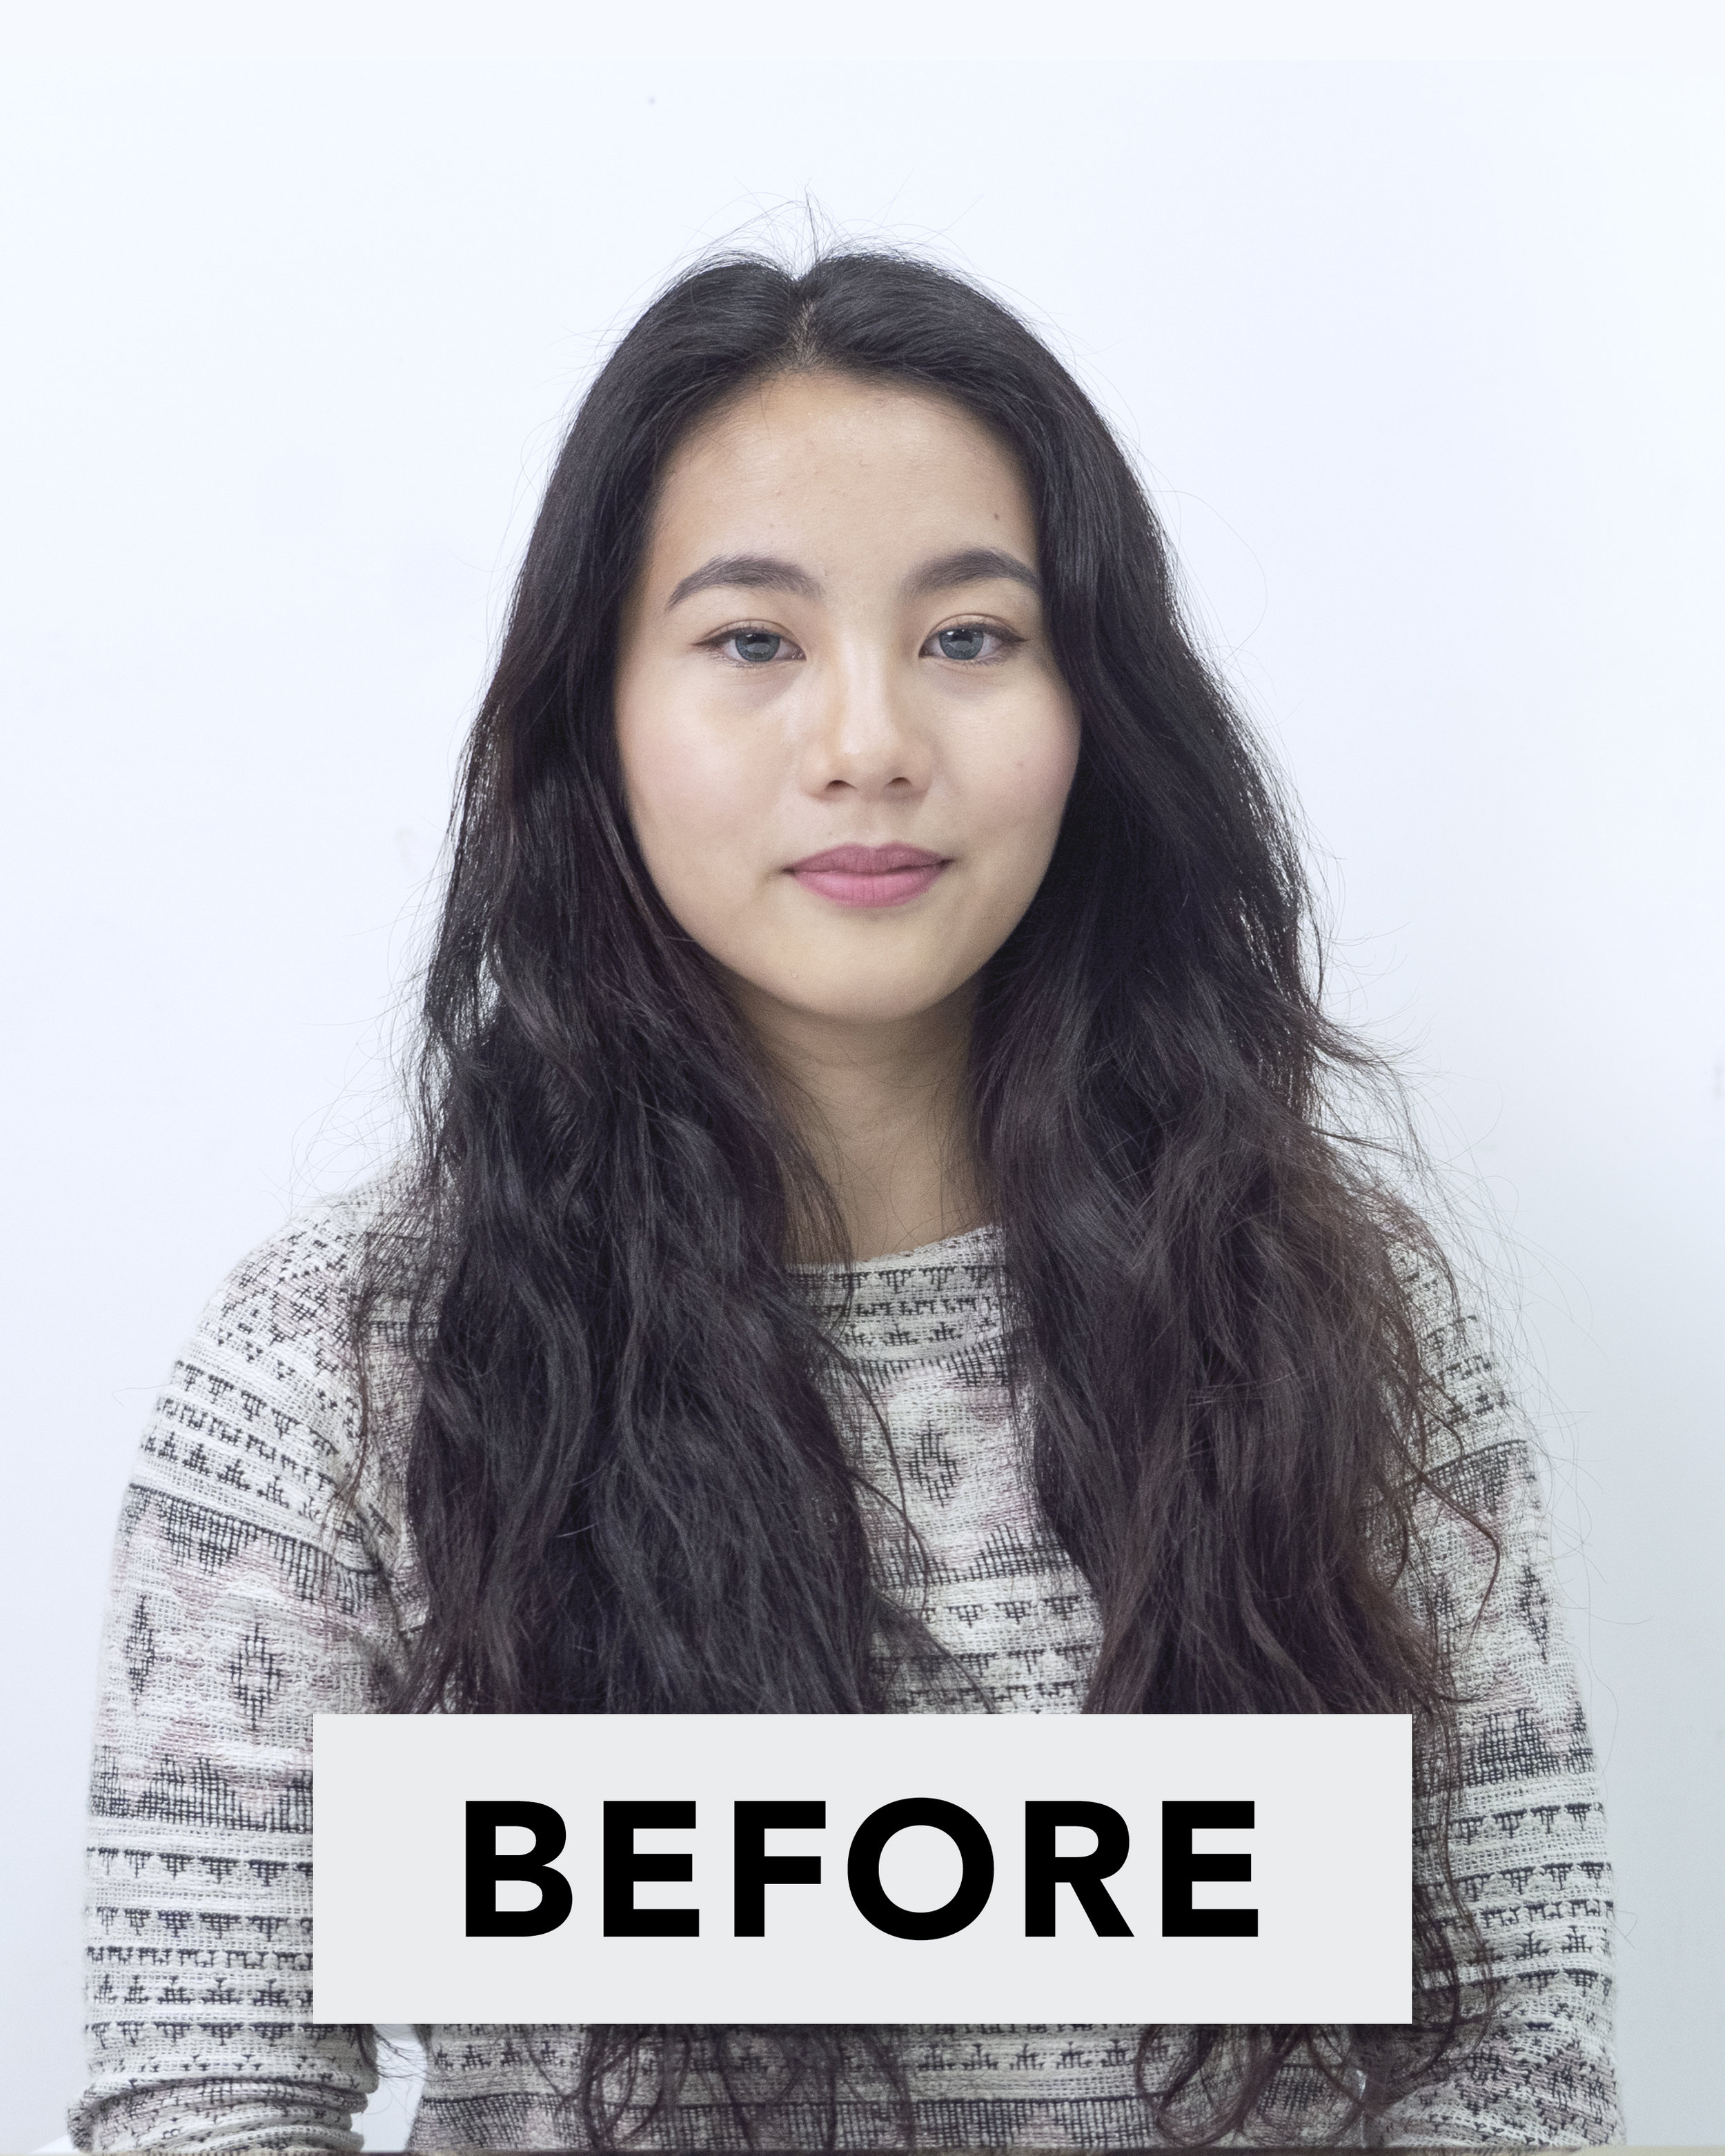 Before using Chanamu C Leave-in Treatment, loose natural curls and dry hair ends.